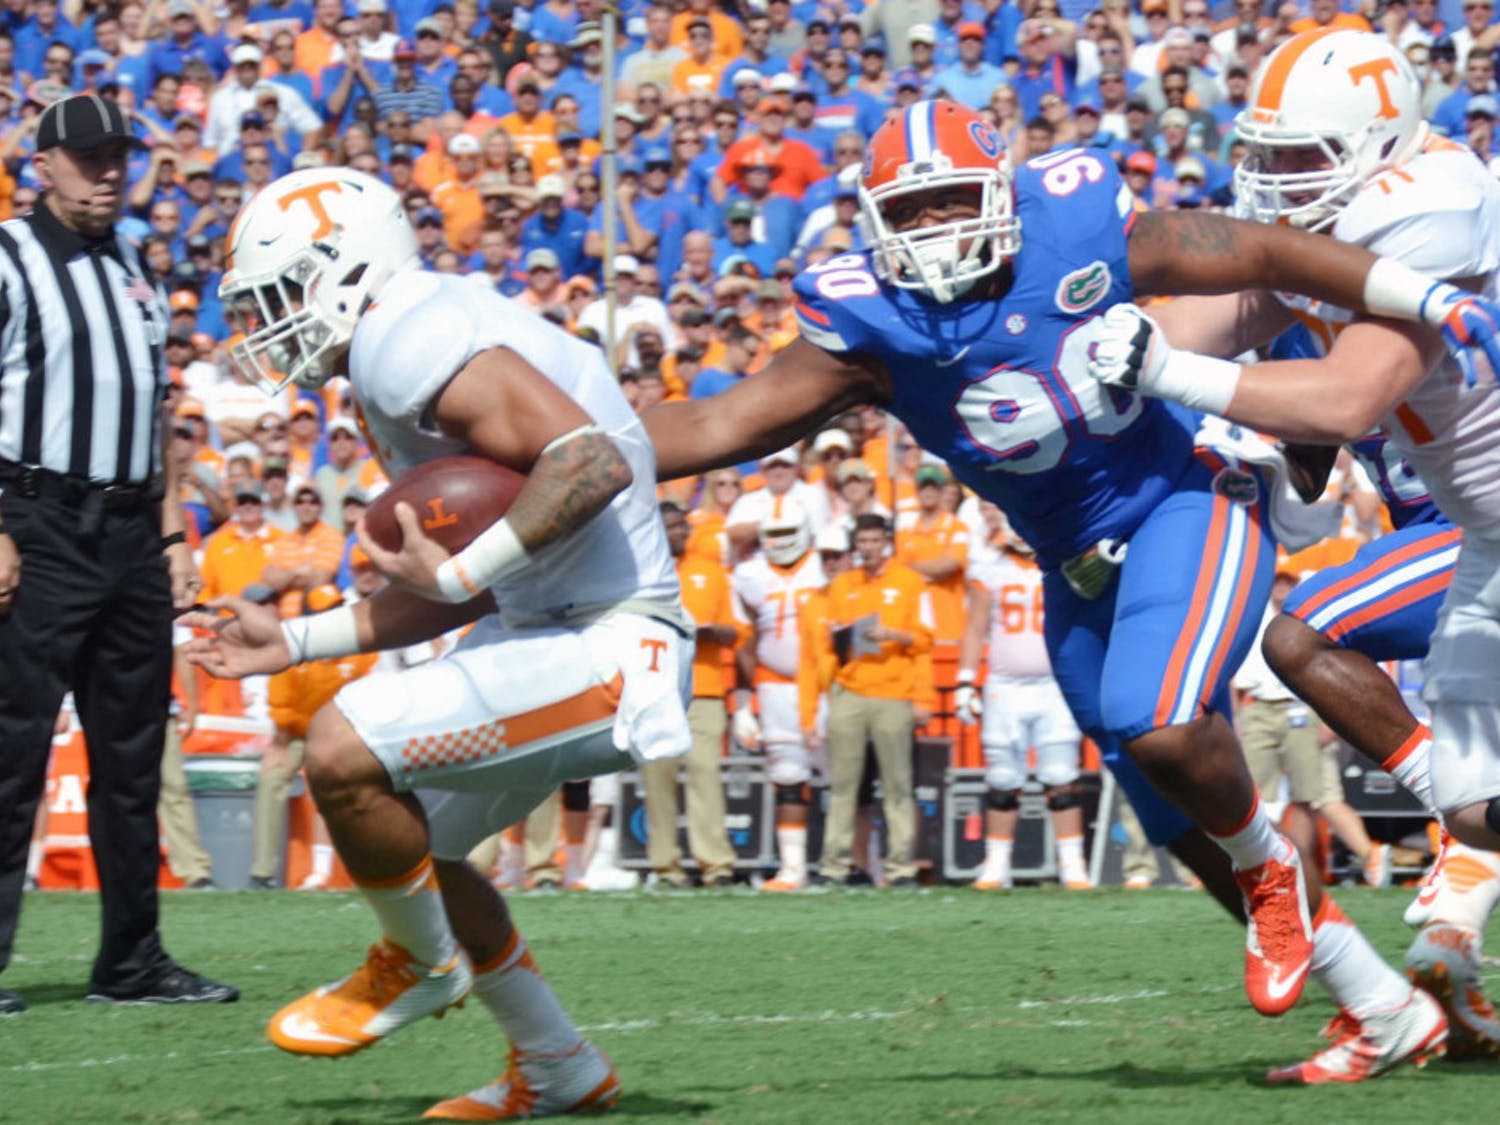 UF defensive lineman Jon Bullard (90) goes for a tackle during Florida's 28-27 win against Tennessee on Sept. 26, 2015, at Ben Hill Griffin Stadium.